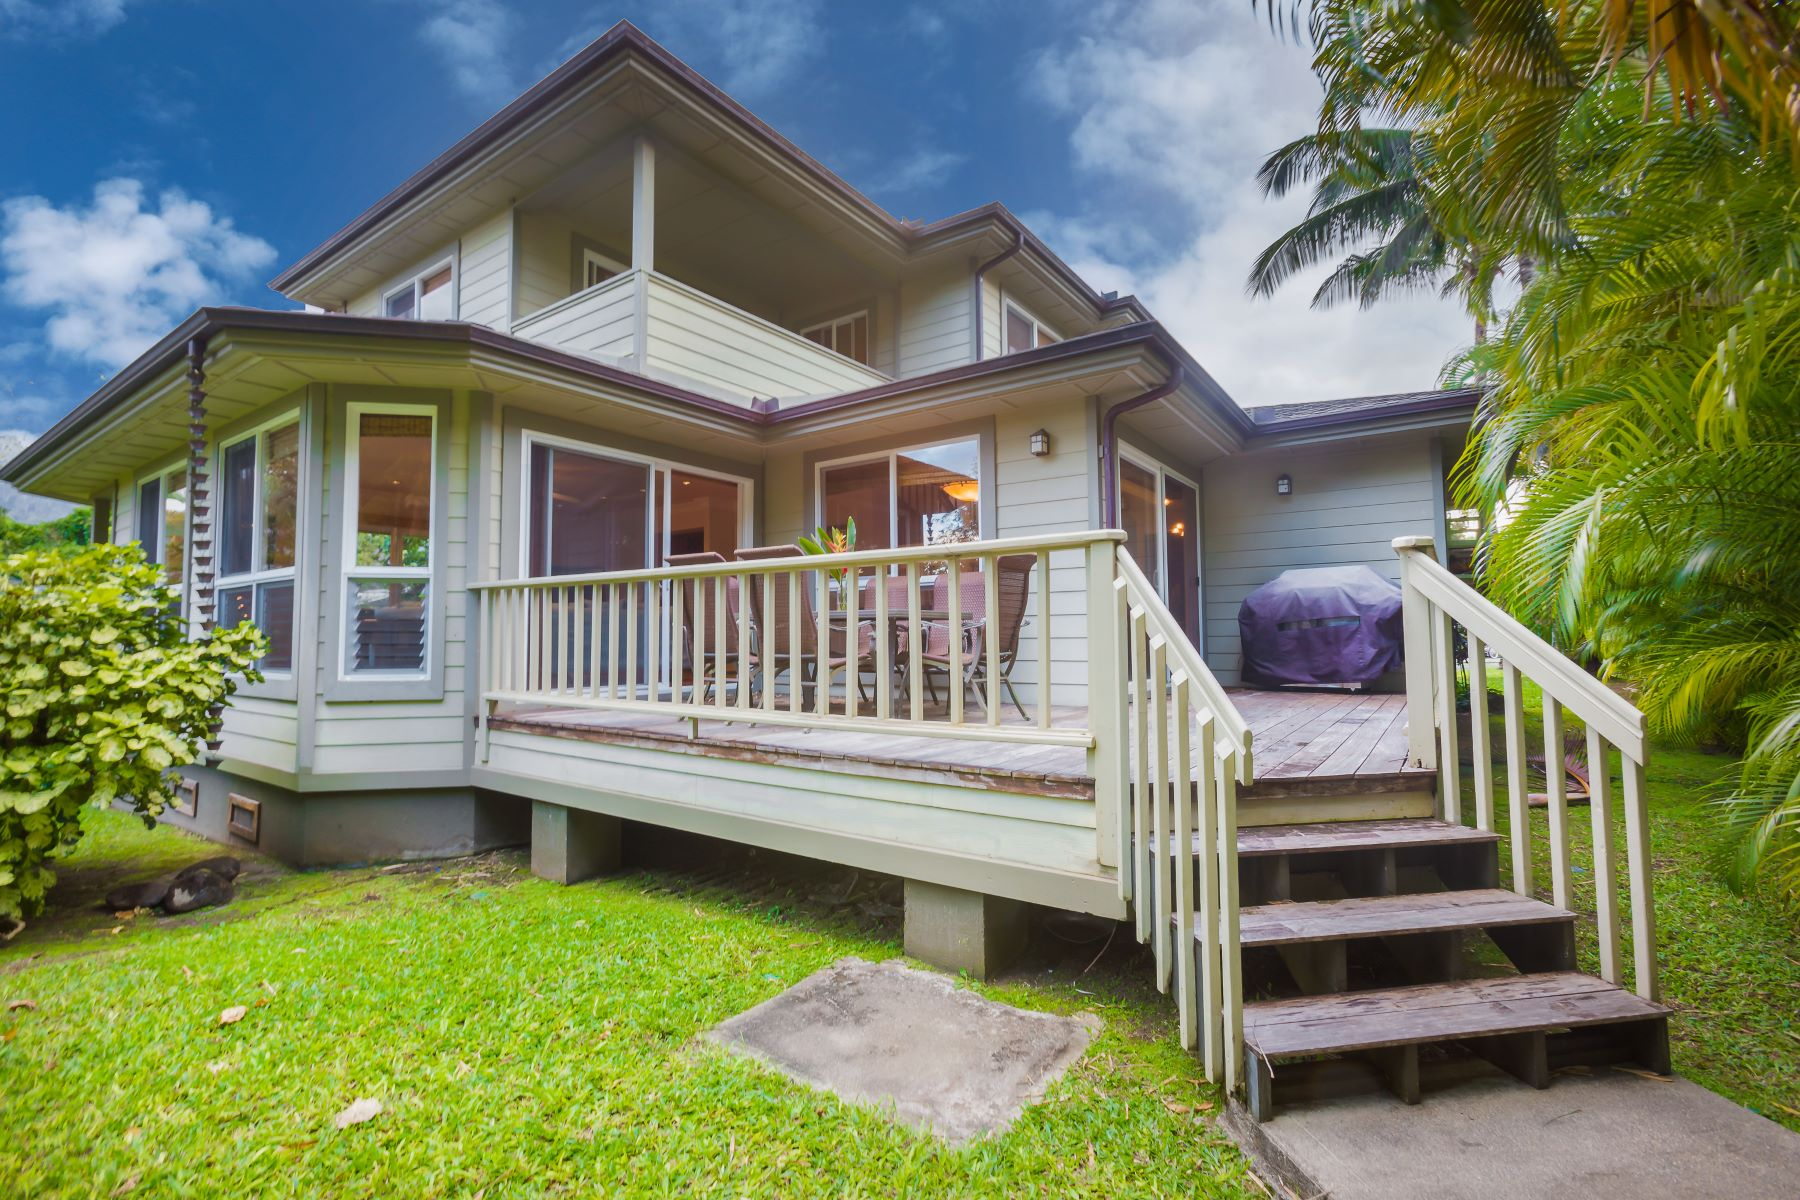 一戸建て のために 売買 アット Beautiful Hanalei Home with Gorgeous Mountain & Waterfall Views 5115 Papio Road, Hanalei, ハワイ, 96714 アメリカ合衆国